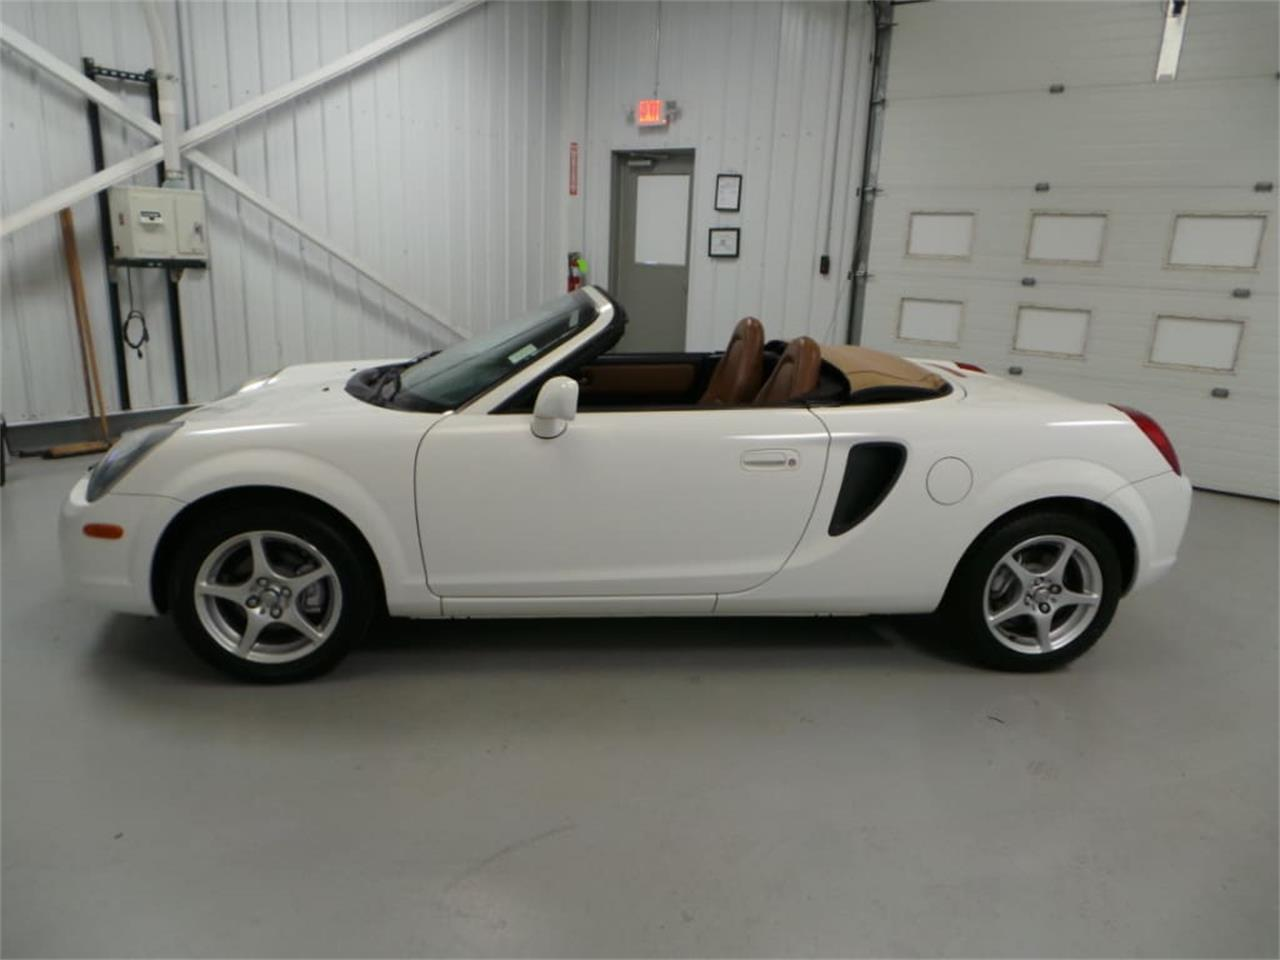 Large Picture of 2001 MR2 Spyder located in Christiansburg Virginia - $13,908.00 Offered by Duncan Imports & Classic Cars - JL89